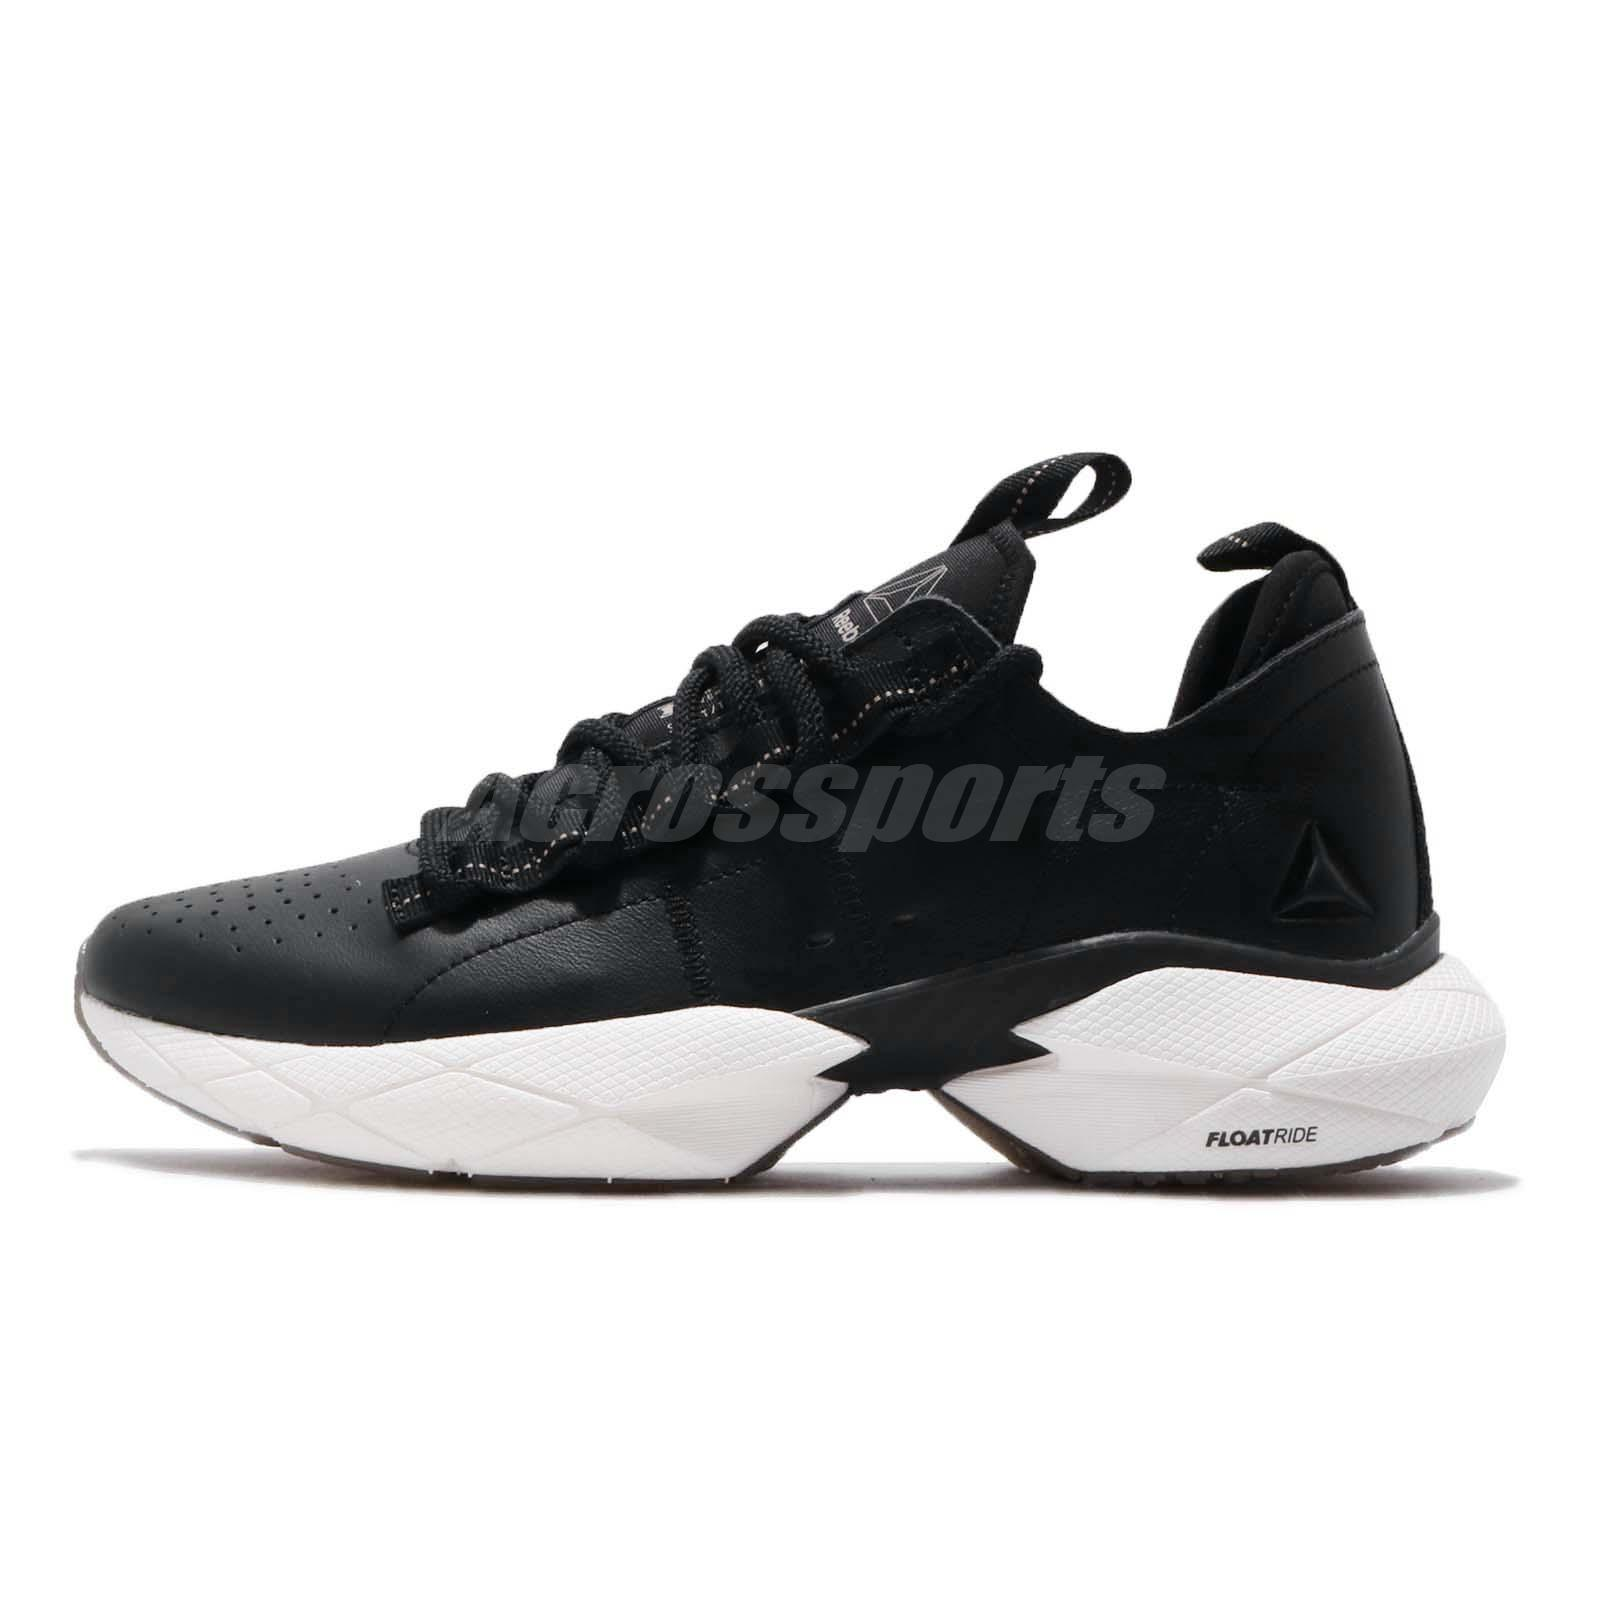 Reebok Sole Fury Floatride SE Black Sand Beige Men Running Fashion Shoes  DV4514 c553710e0